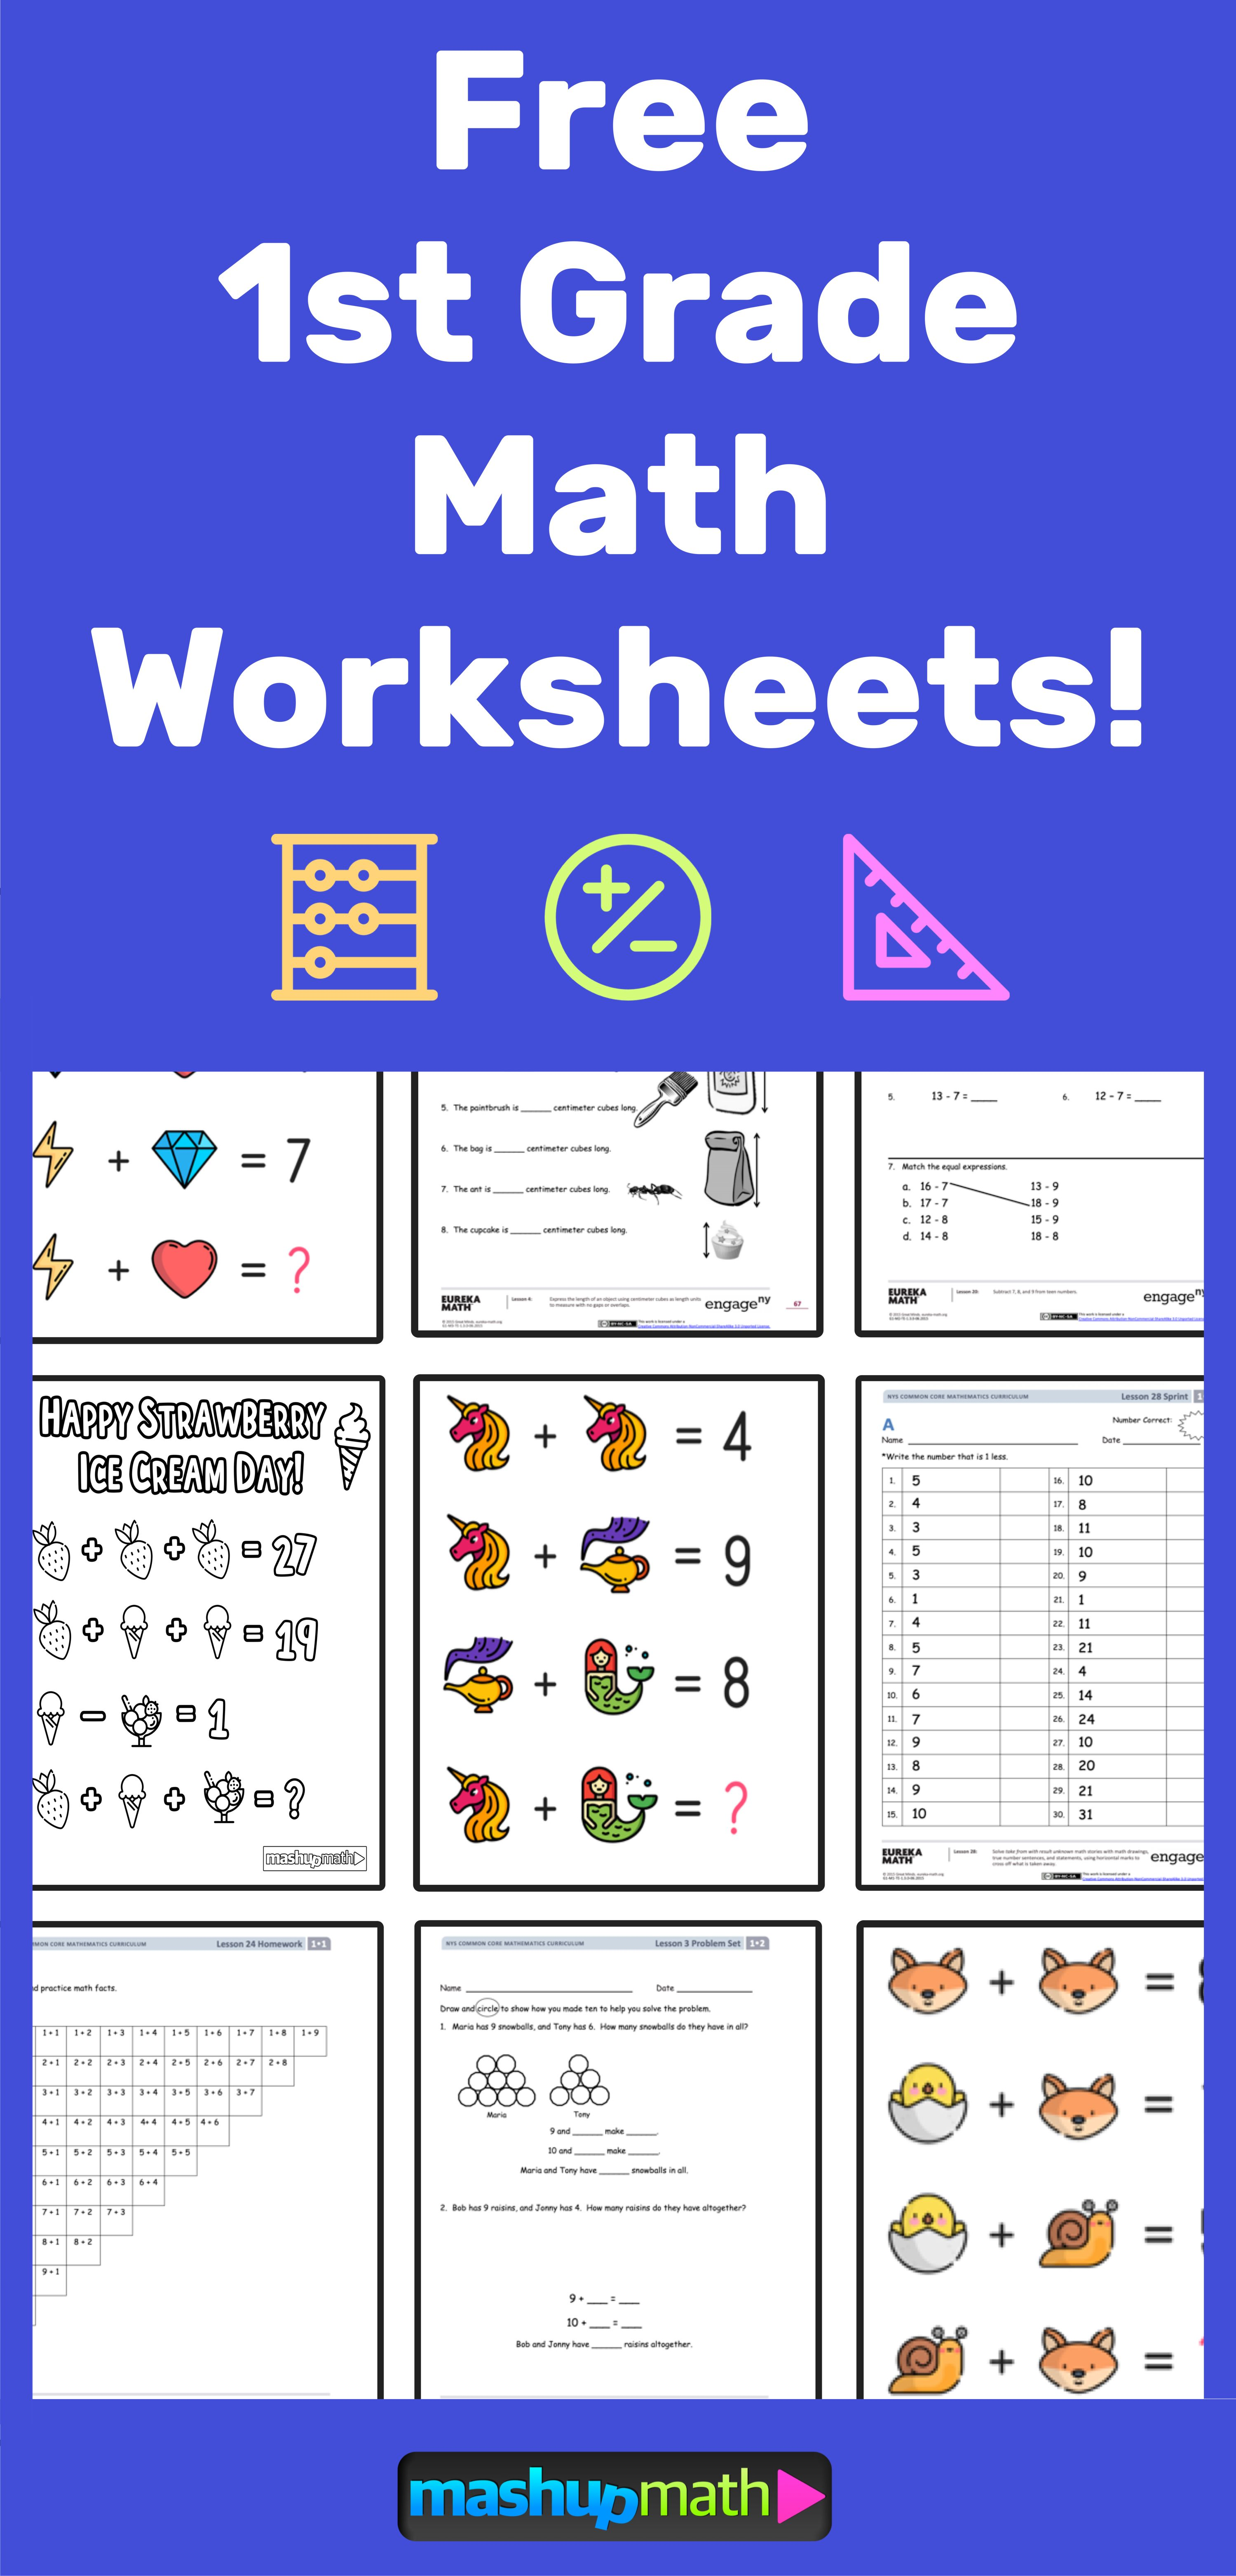 The Best Math Worksheets For 1st Grade Students Mashup Math Math Worksheets 1st Grade Math Worksheets First Grade Math Worksheets [ 6249 x 2999 Pixel ]